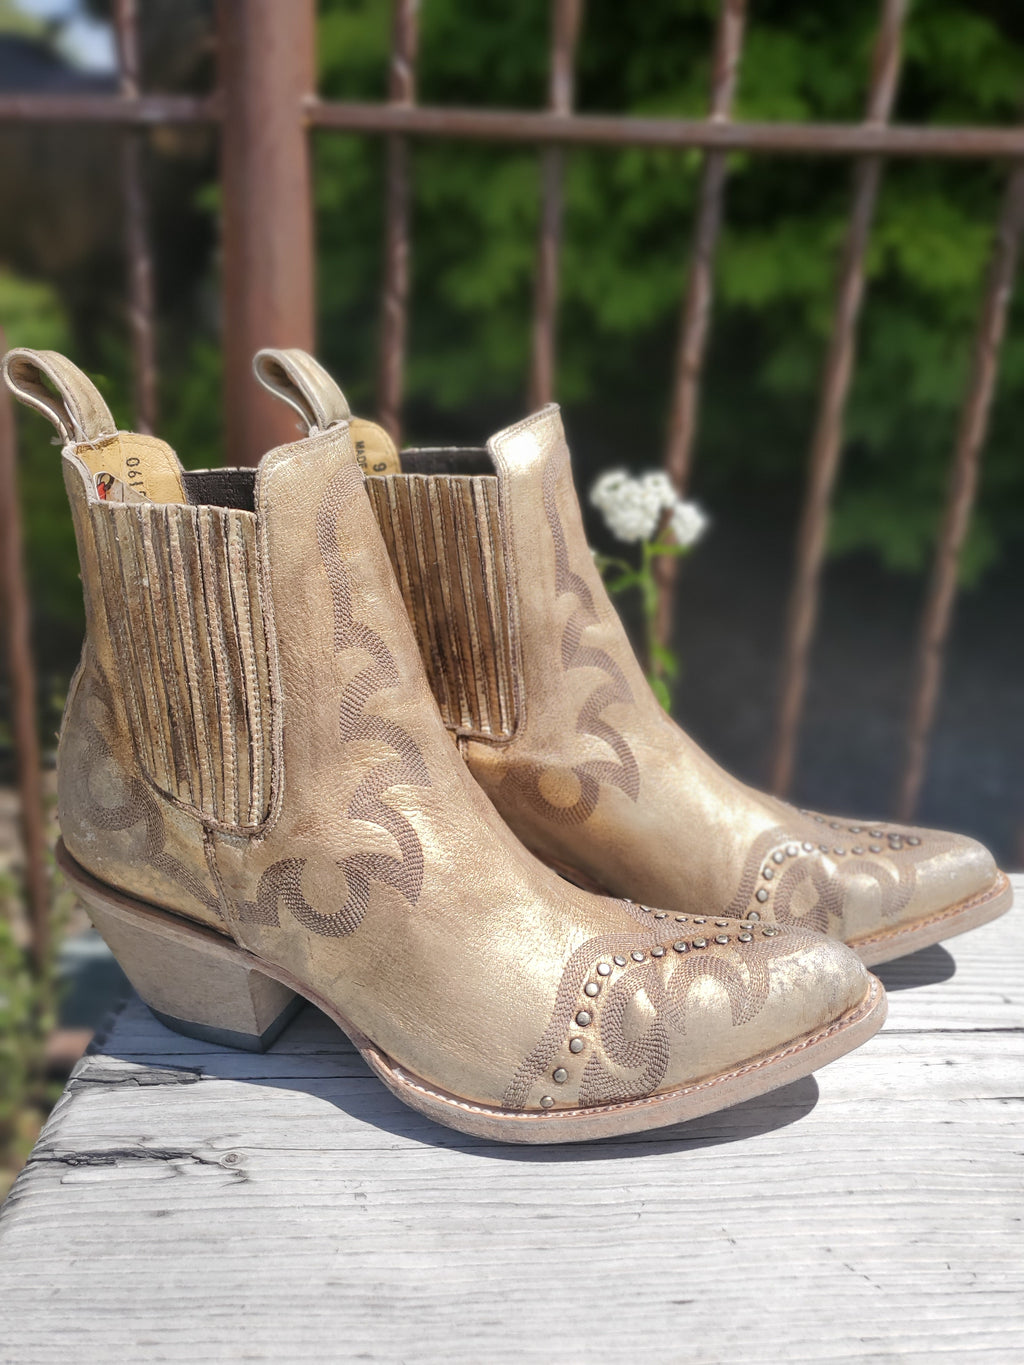 Old Gringo Shay Ankle Leather Cowboy Boots in Distressed Gold